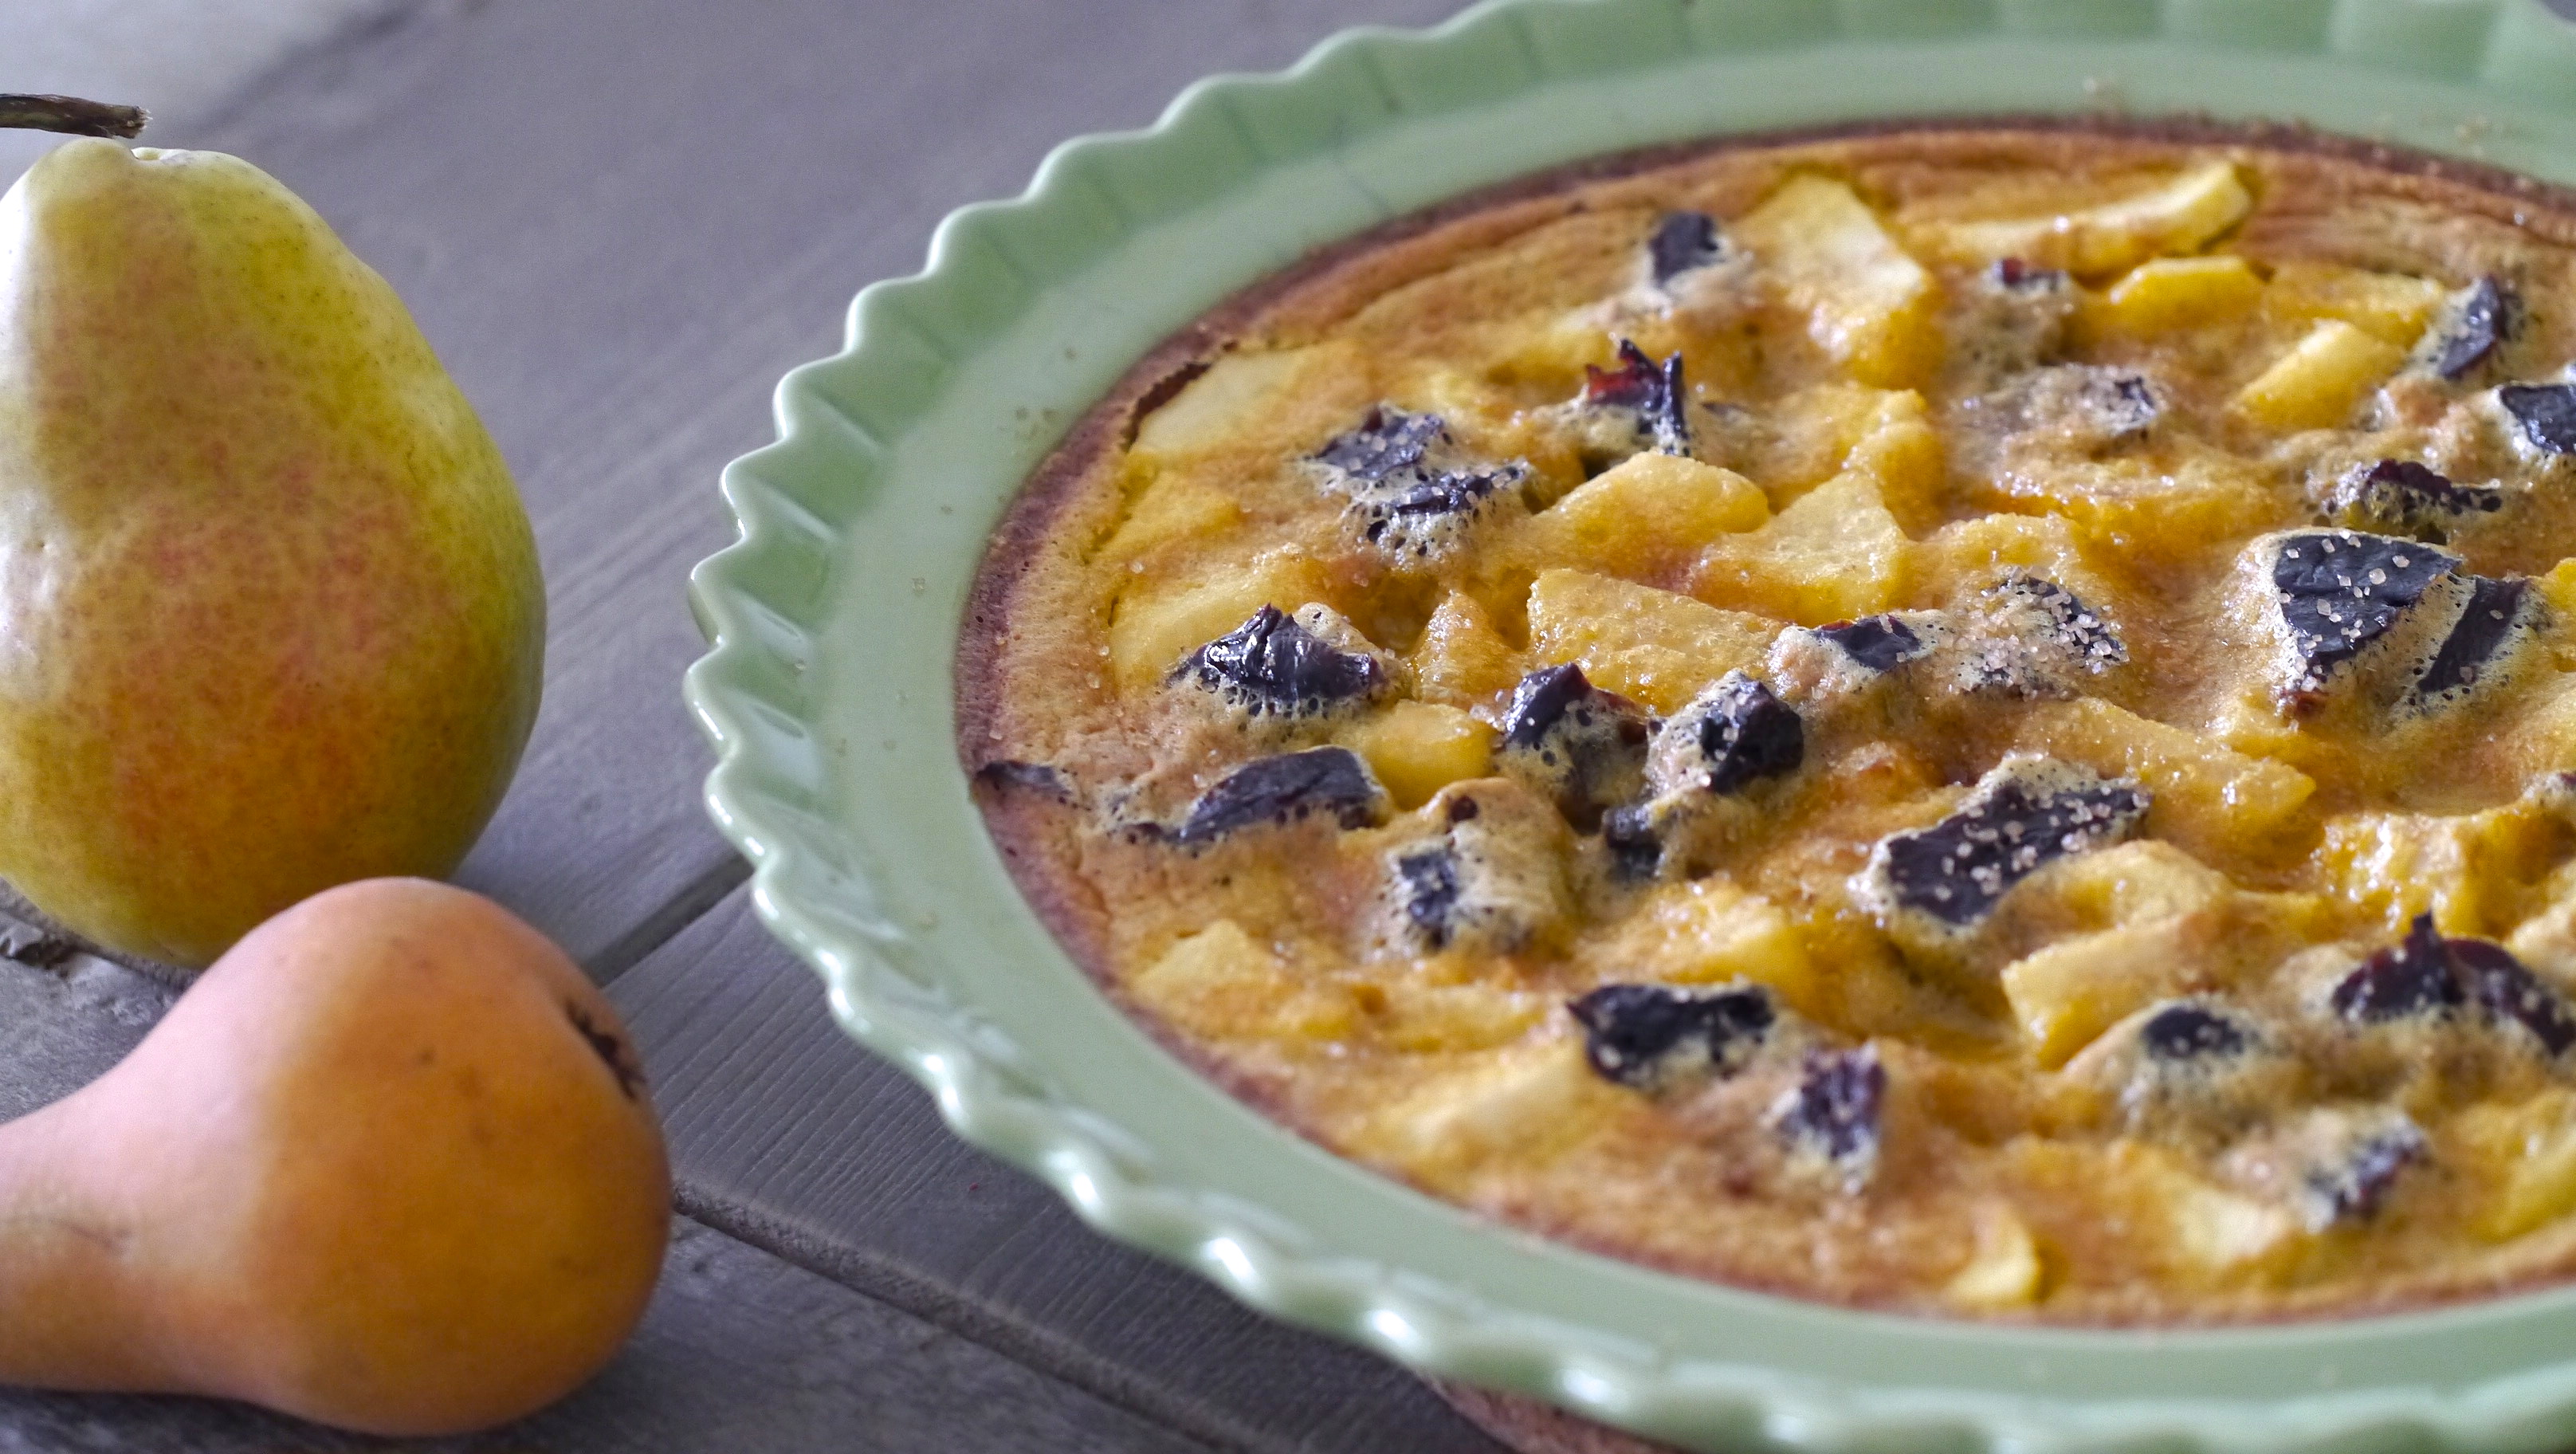 Gluten-Free Pear and Plum Clafoutis